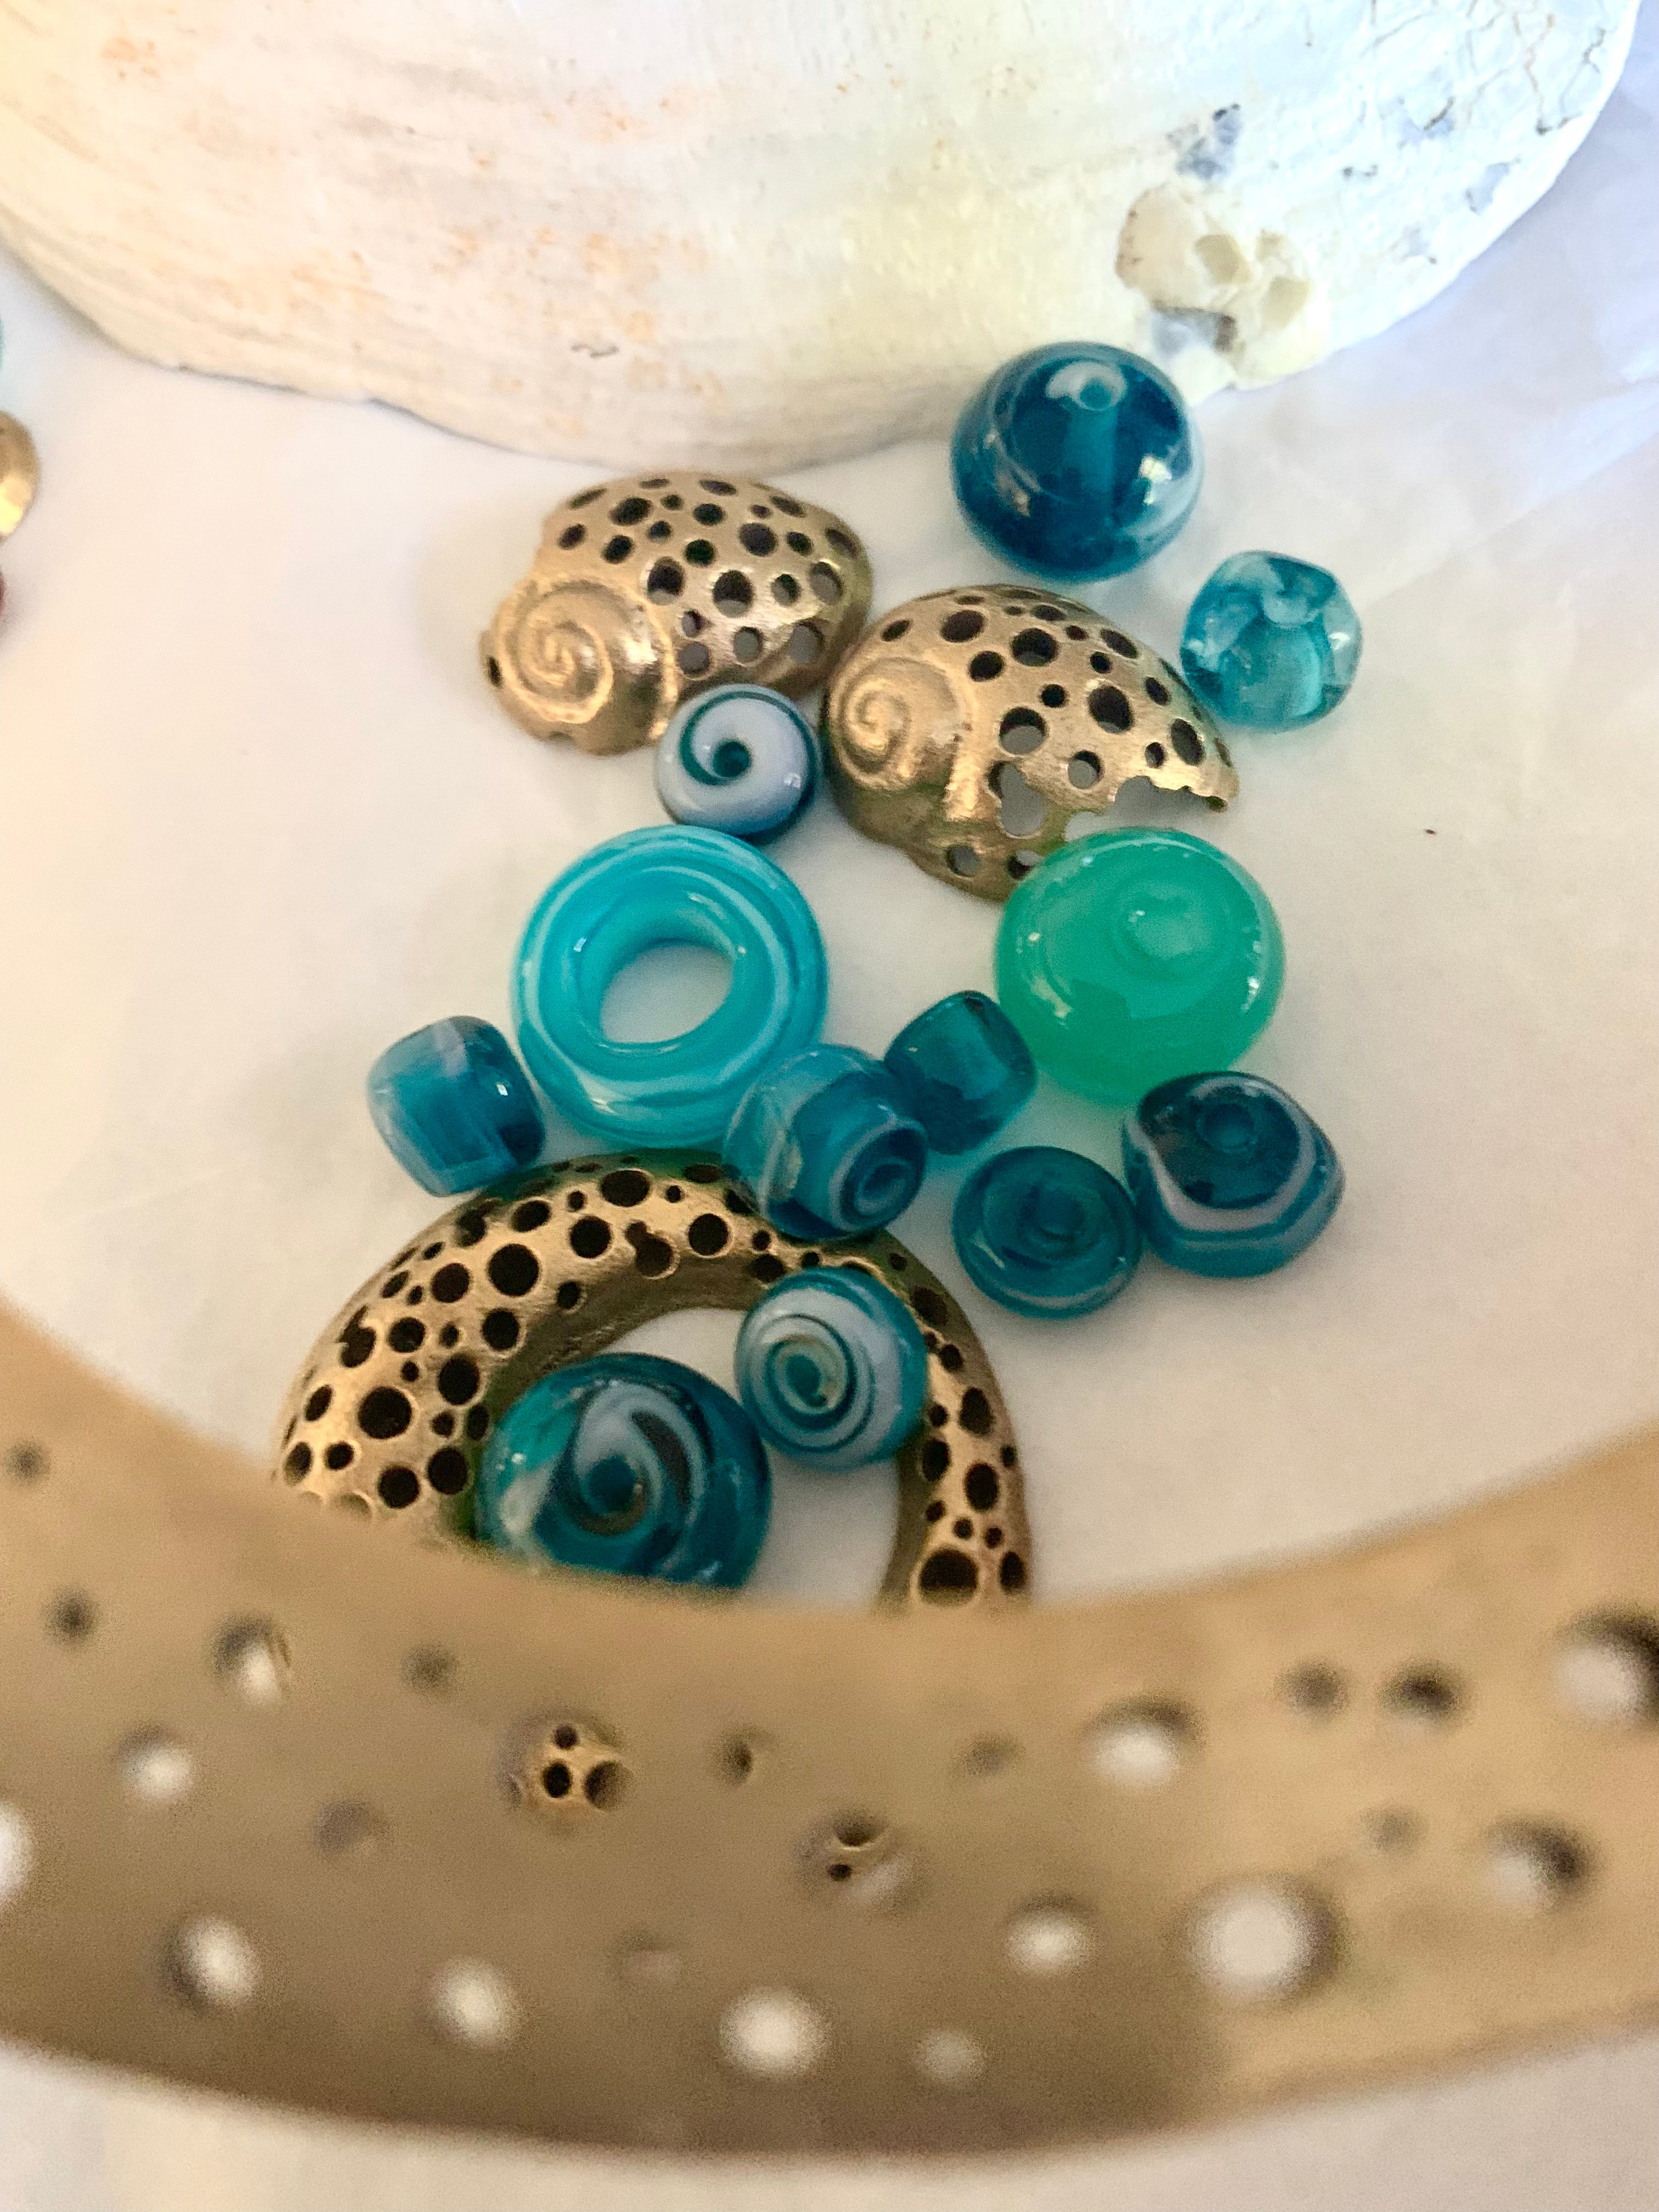 Bronze artisan made pieces with blue glass beads